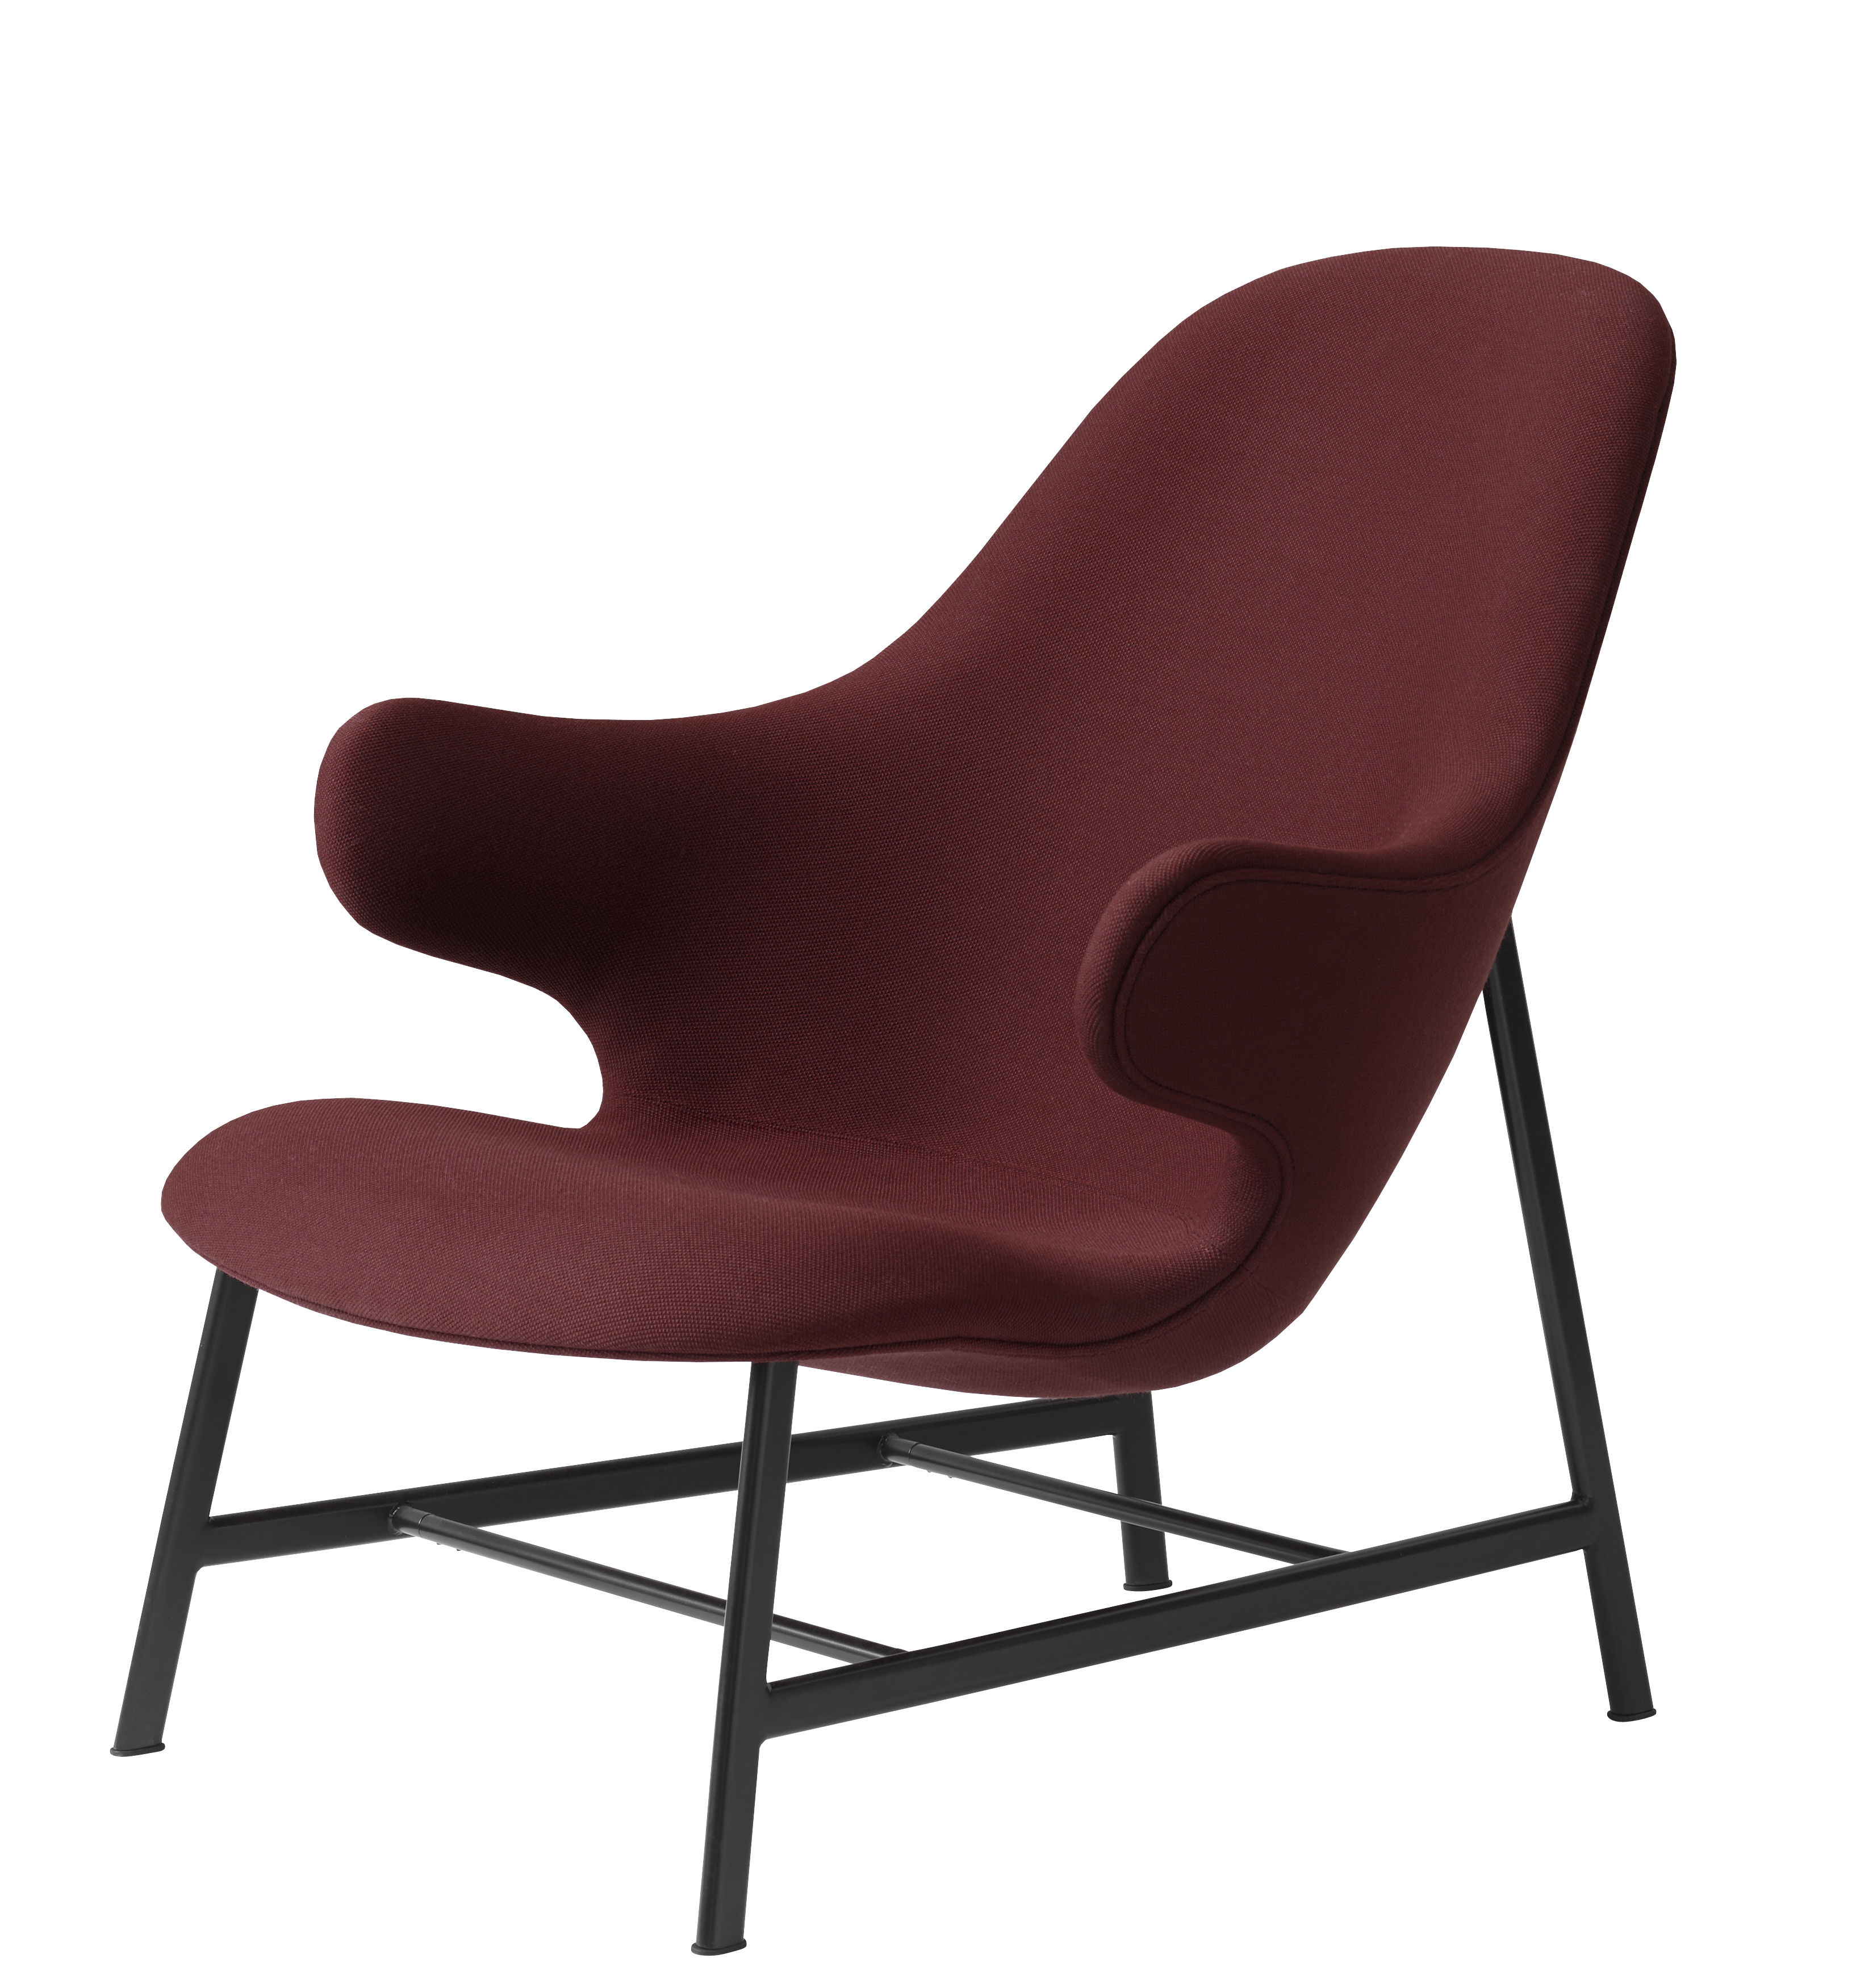 Furniture - Armchairs - Catch Lounge Low armchair - Kvadrat fabric & steel feet by &tradition - Red / Feet : black stained steel - Kvadrat fabric, Painted steel, Polyurethane foam